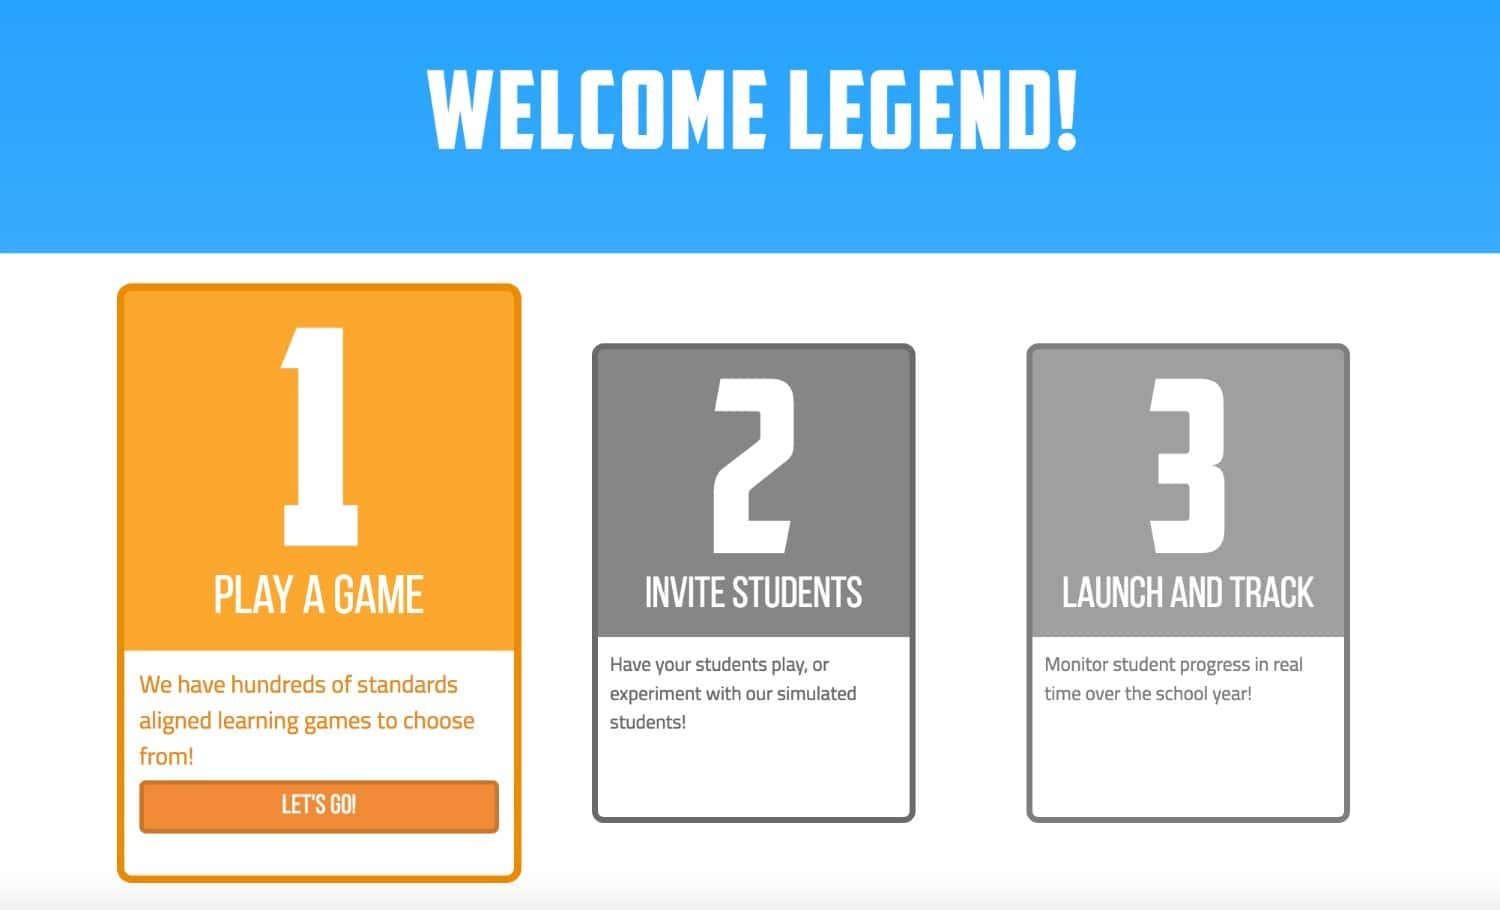 Legends of Learning website